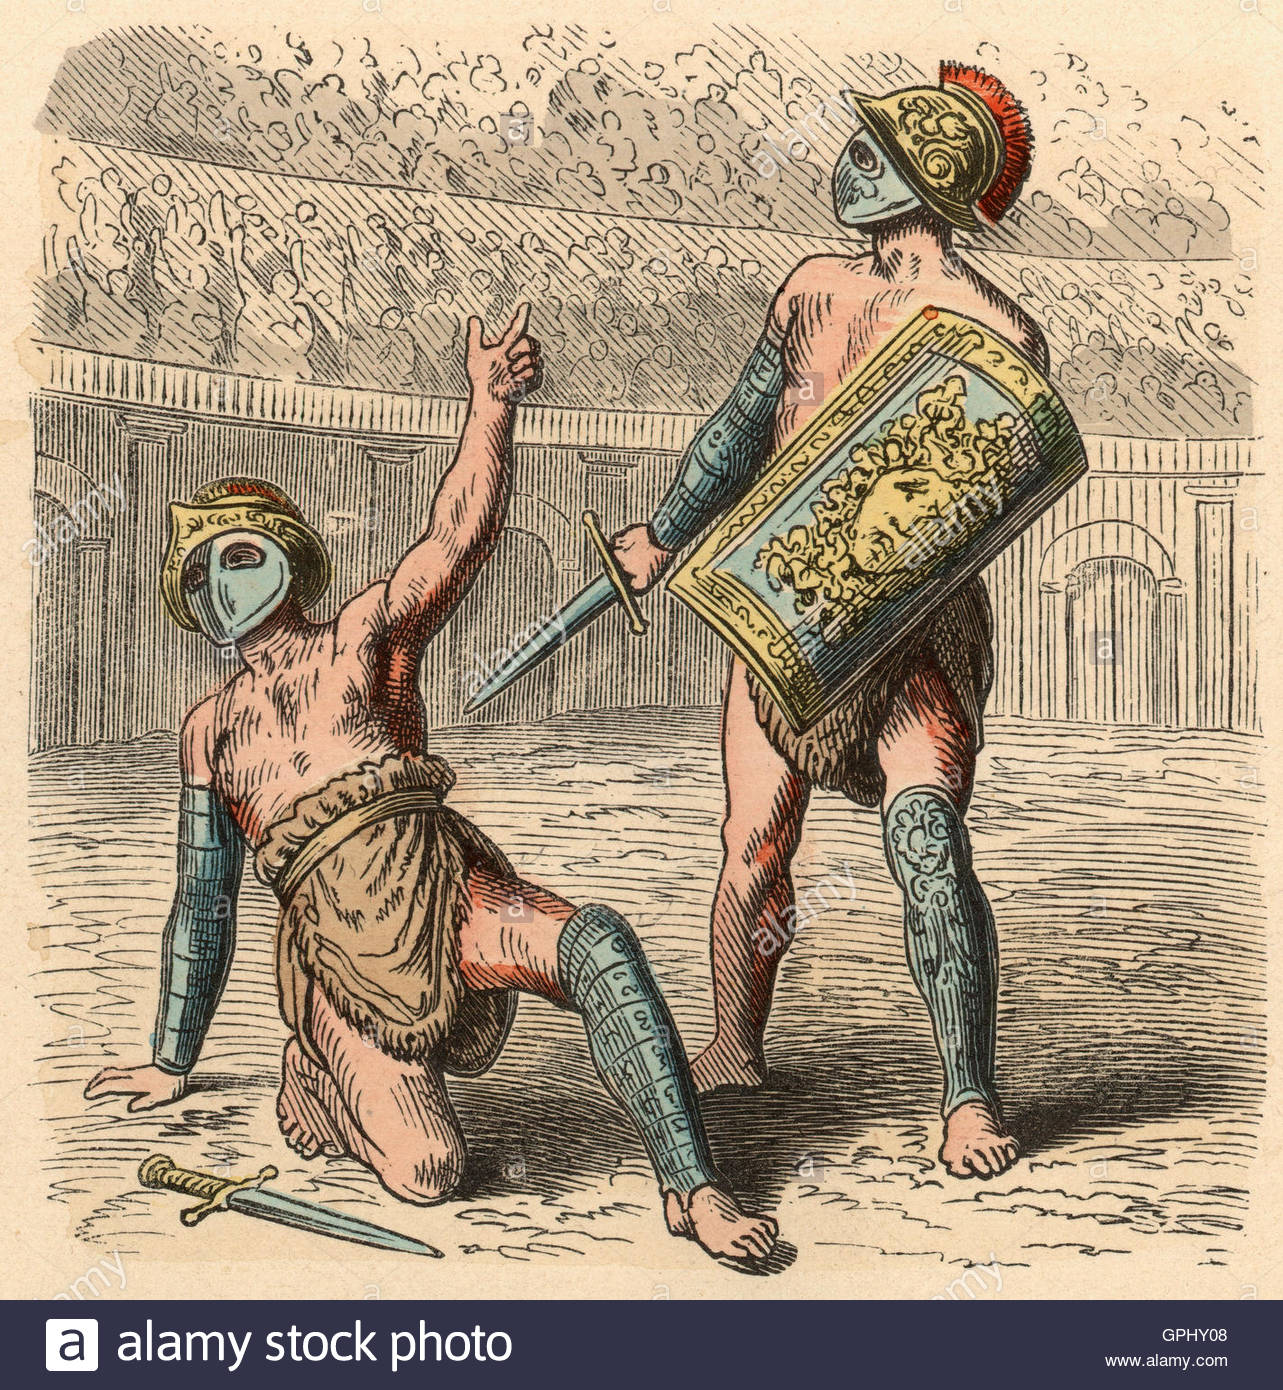 an introduction to the history of roman gladiators in rome The history of ancient rome is well known for its interesting stories of famous roman gladiators, who fought in the infamous, blood-spattered arenas, including the roman colosseum, throughout their lives.